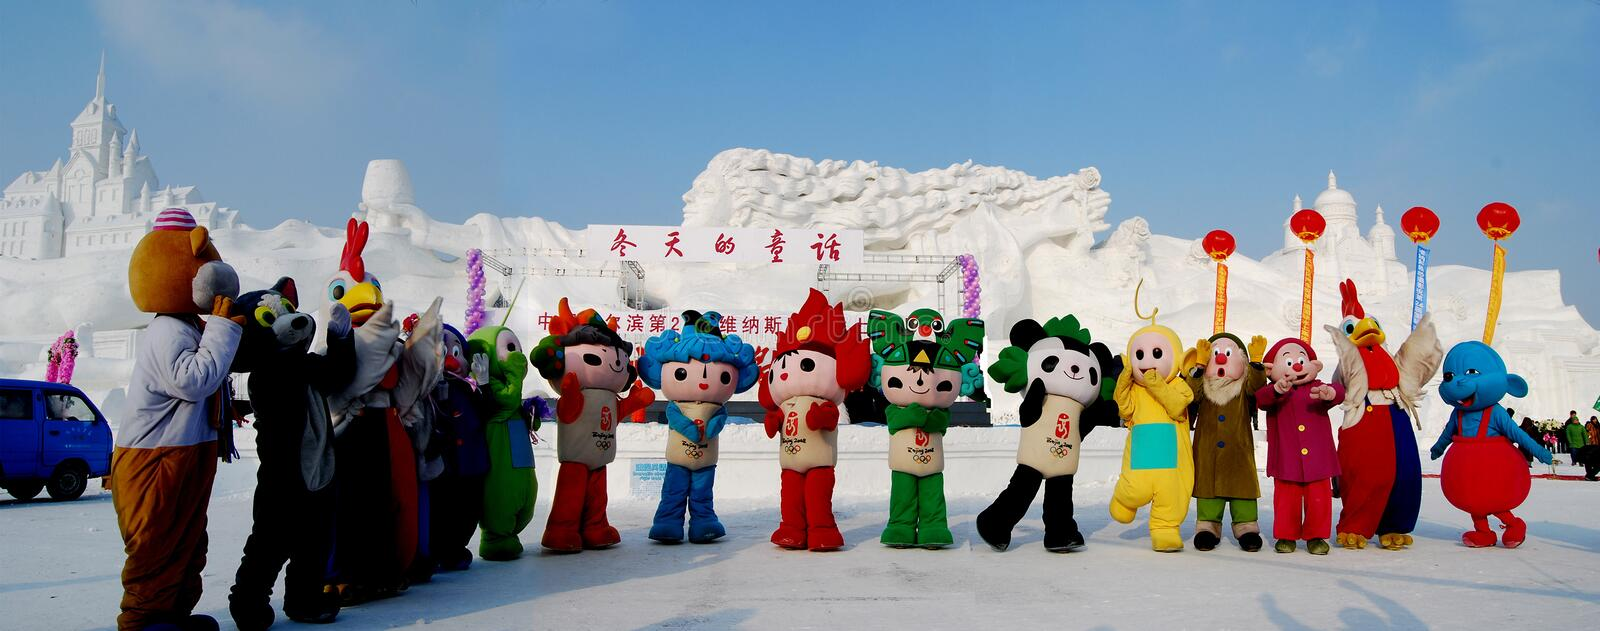 China Harbin international ice snow stanza the 24t stock image